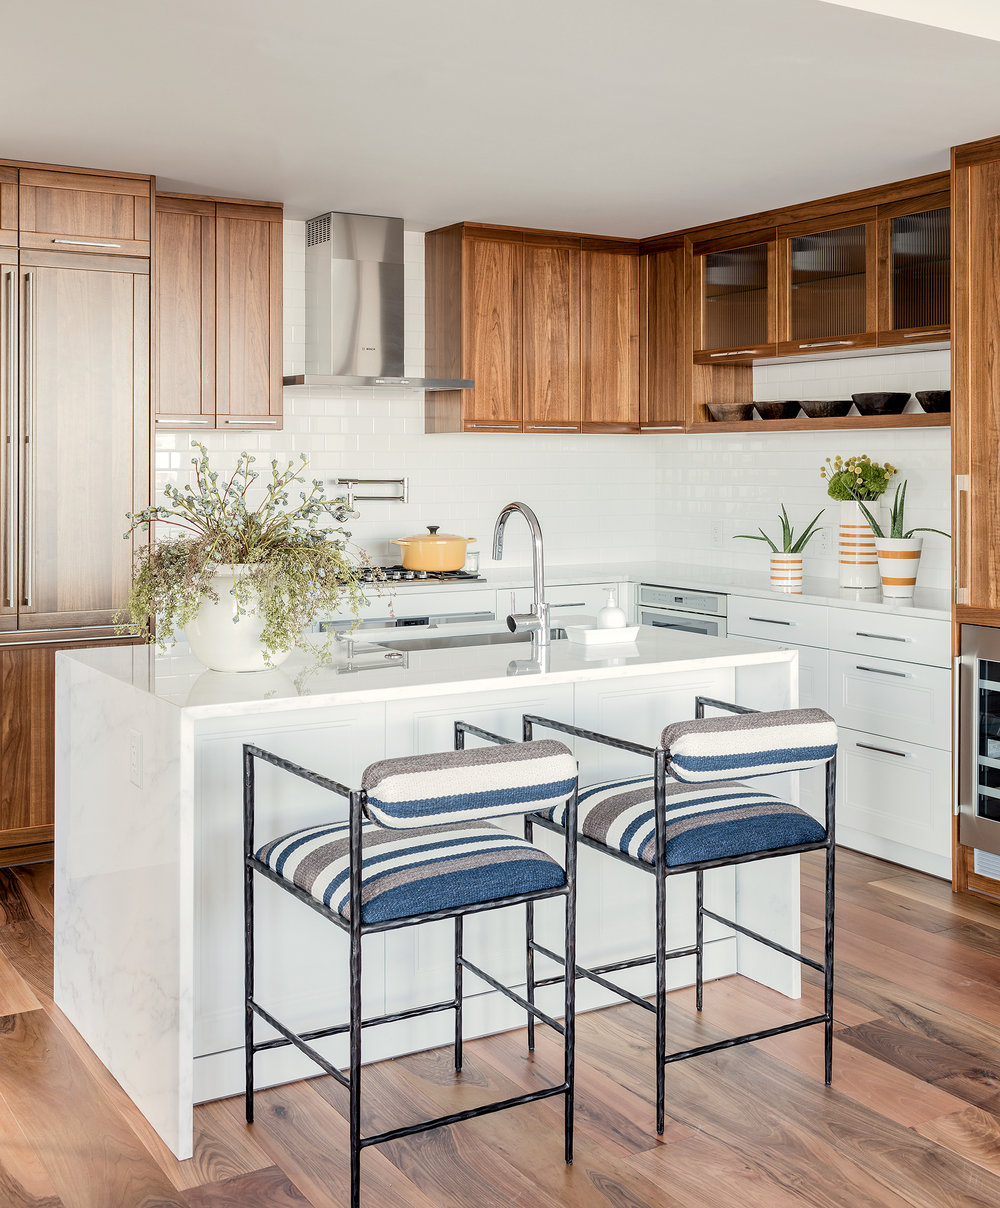 pier-4-model-kitchen-island-hudson-interior-designs.jpg